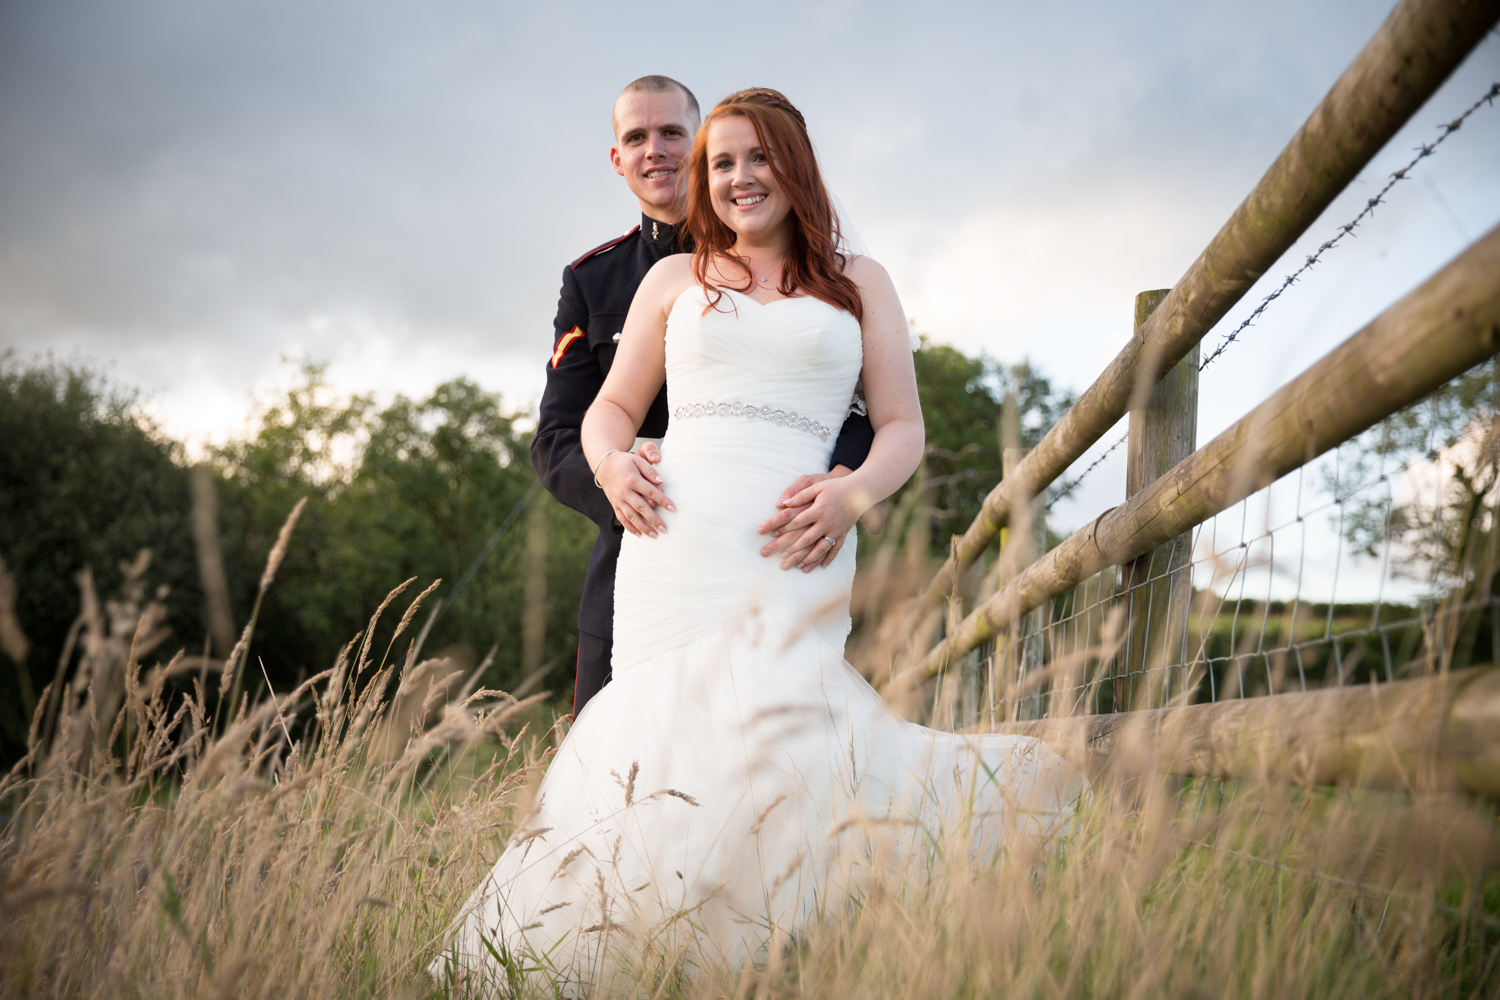 """We couldn't have asked for a better photographer to capture our day, we would recommend Andy to anyone. Everyone felt so relaxed all day. We have beautiful photos that capture every emotion of our day. Thank you so much Andy"" - - Steph & Aj"